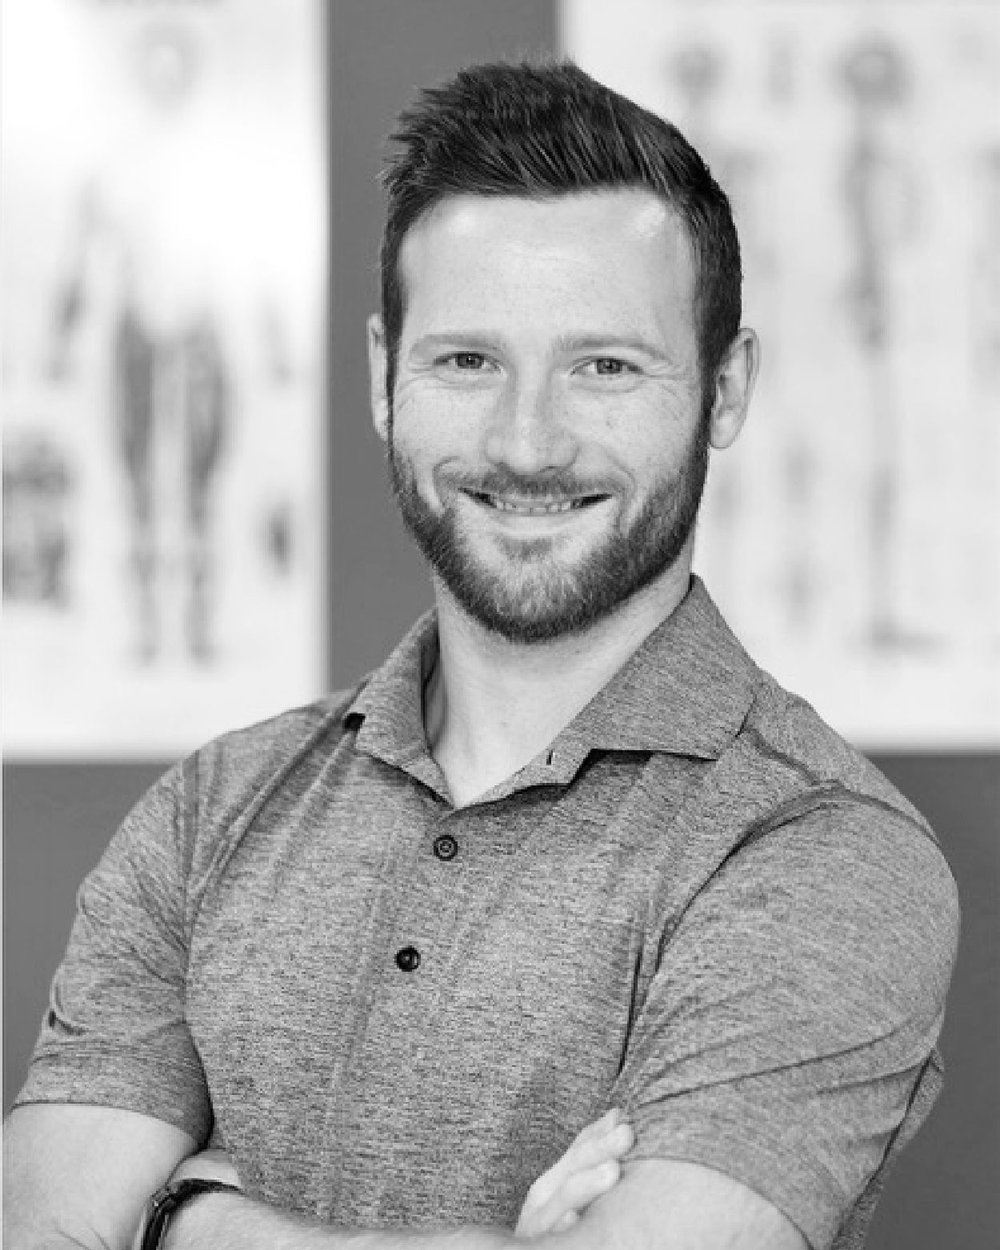 Dr. Taylor Tuff - Dr. Taylor Tuff received his Honours Bachelor of Science degree from McMaster University and subsequently earned his Doctor of Chiropractic degree from the Canadian Memorial Chiropractic College (CMCC). He became interested in chiropractic and physical medicine from his experience as an athlete. During his youth, Dr. Tuff enjoyed playing hockey, football, and rugby but spent most of his extracurricular time as a competitive gymnast. Dr. Tuff uses a patient-centred, evidence-based approach to care, combining chiropractic techniques, contemporary electro-acupuncture, myofascial release therapy, and rehabilitative exercise. He strongly believes that an integrated model of healthcare is essential to optimizing the health and well-being within communities.